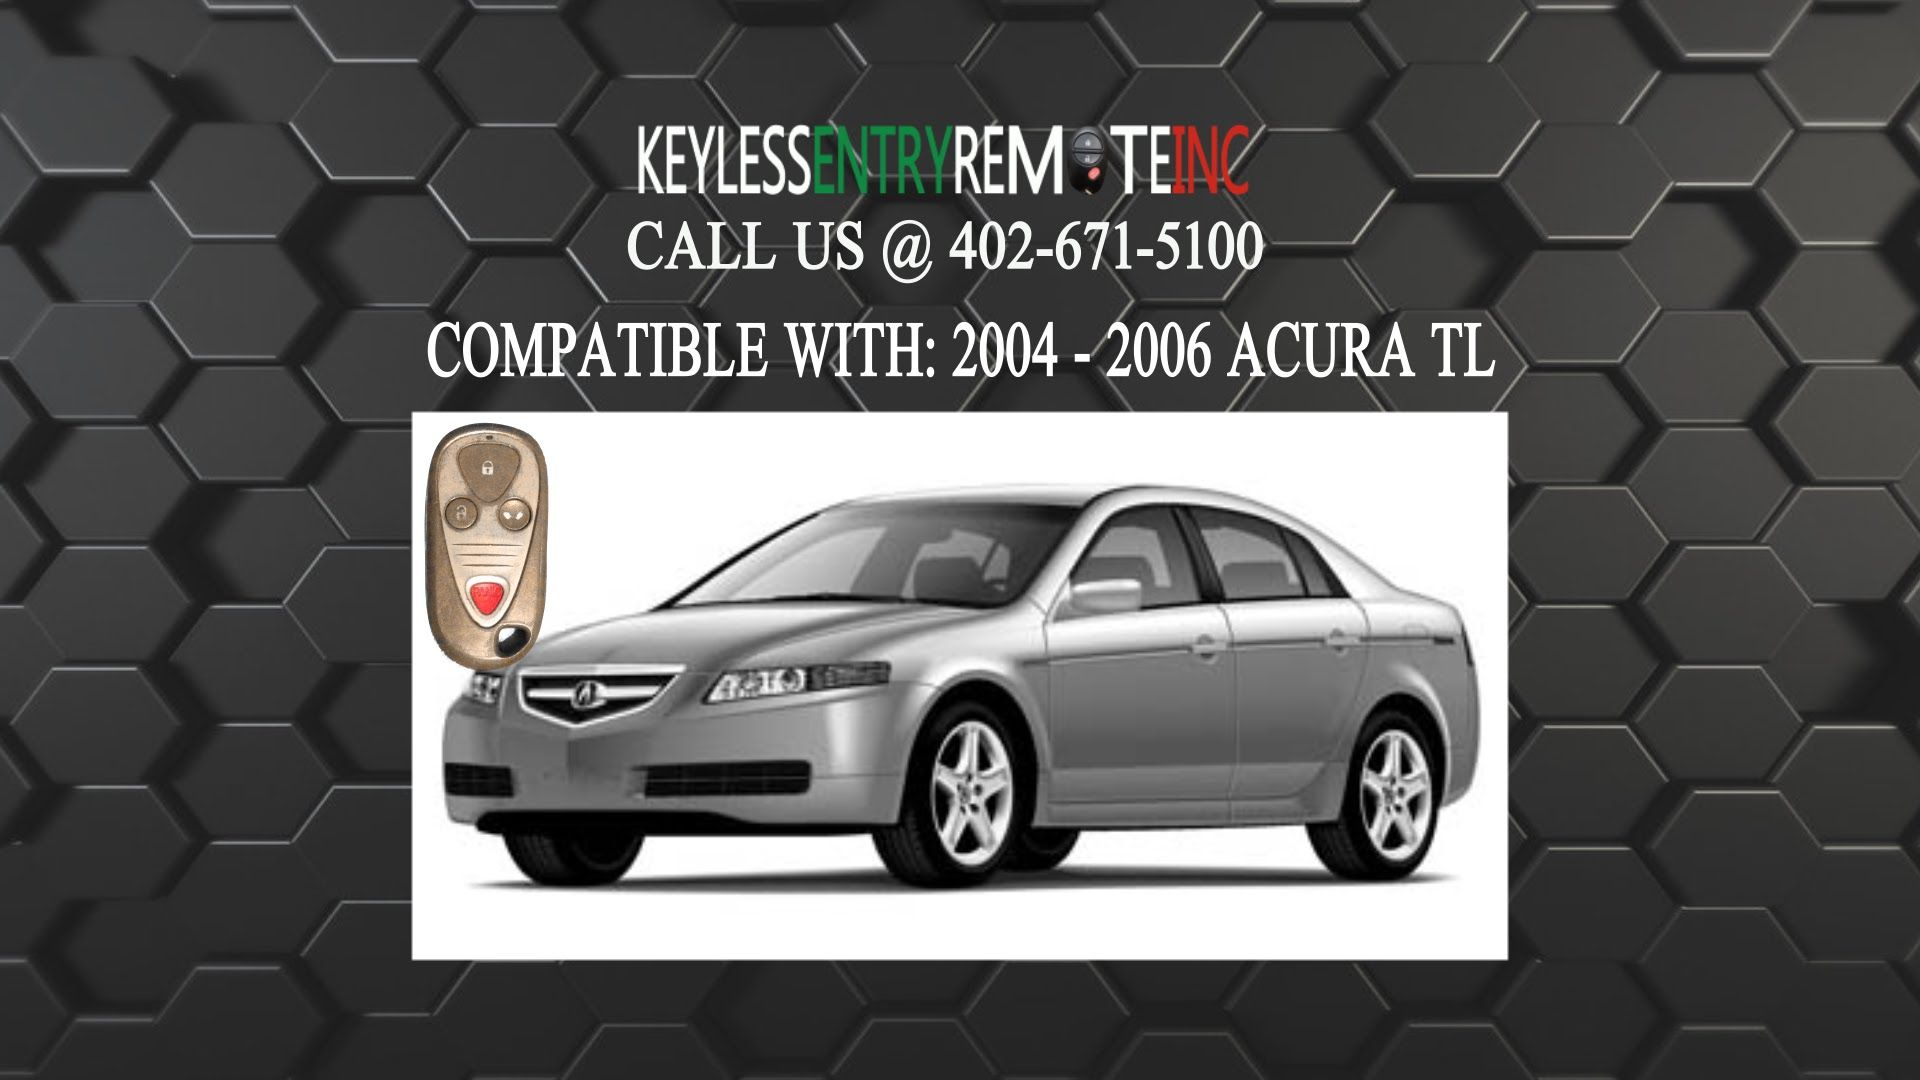 how to replace acura tl key fob battery 2004 2006 [ 1920 x 1080 Pixel ]